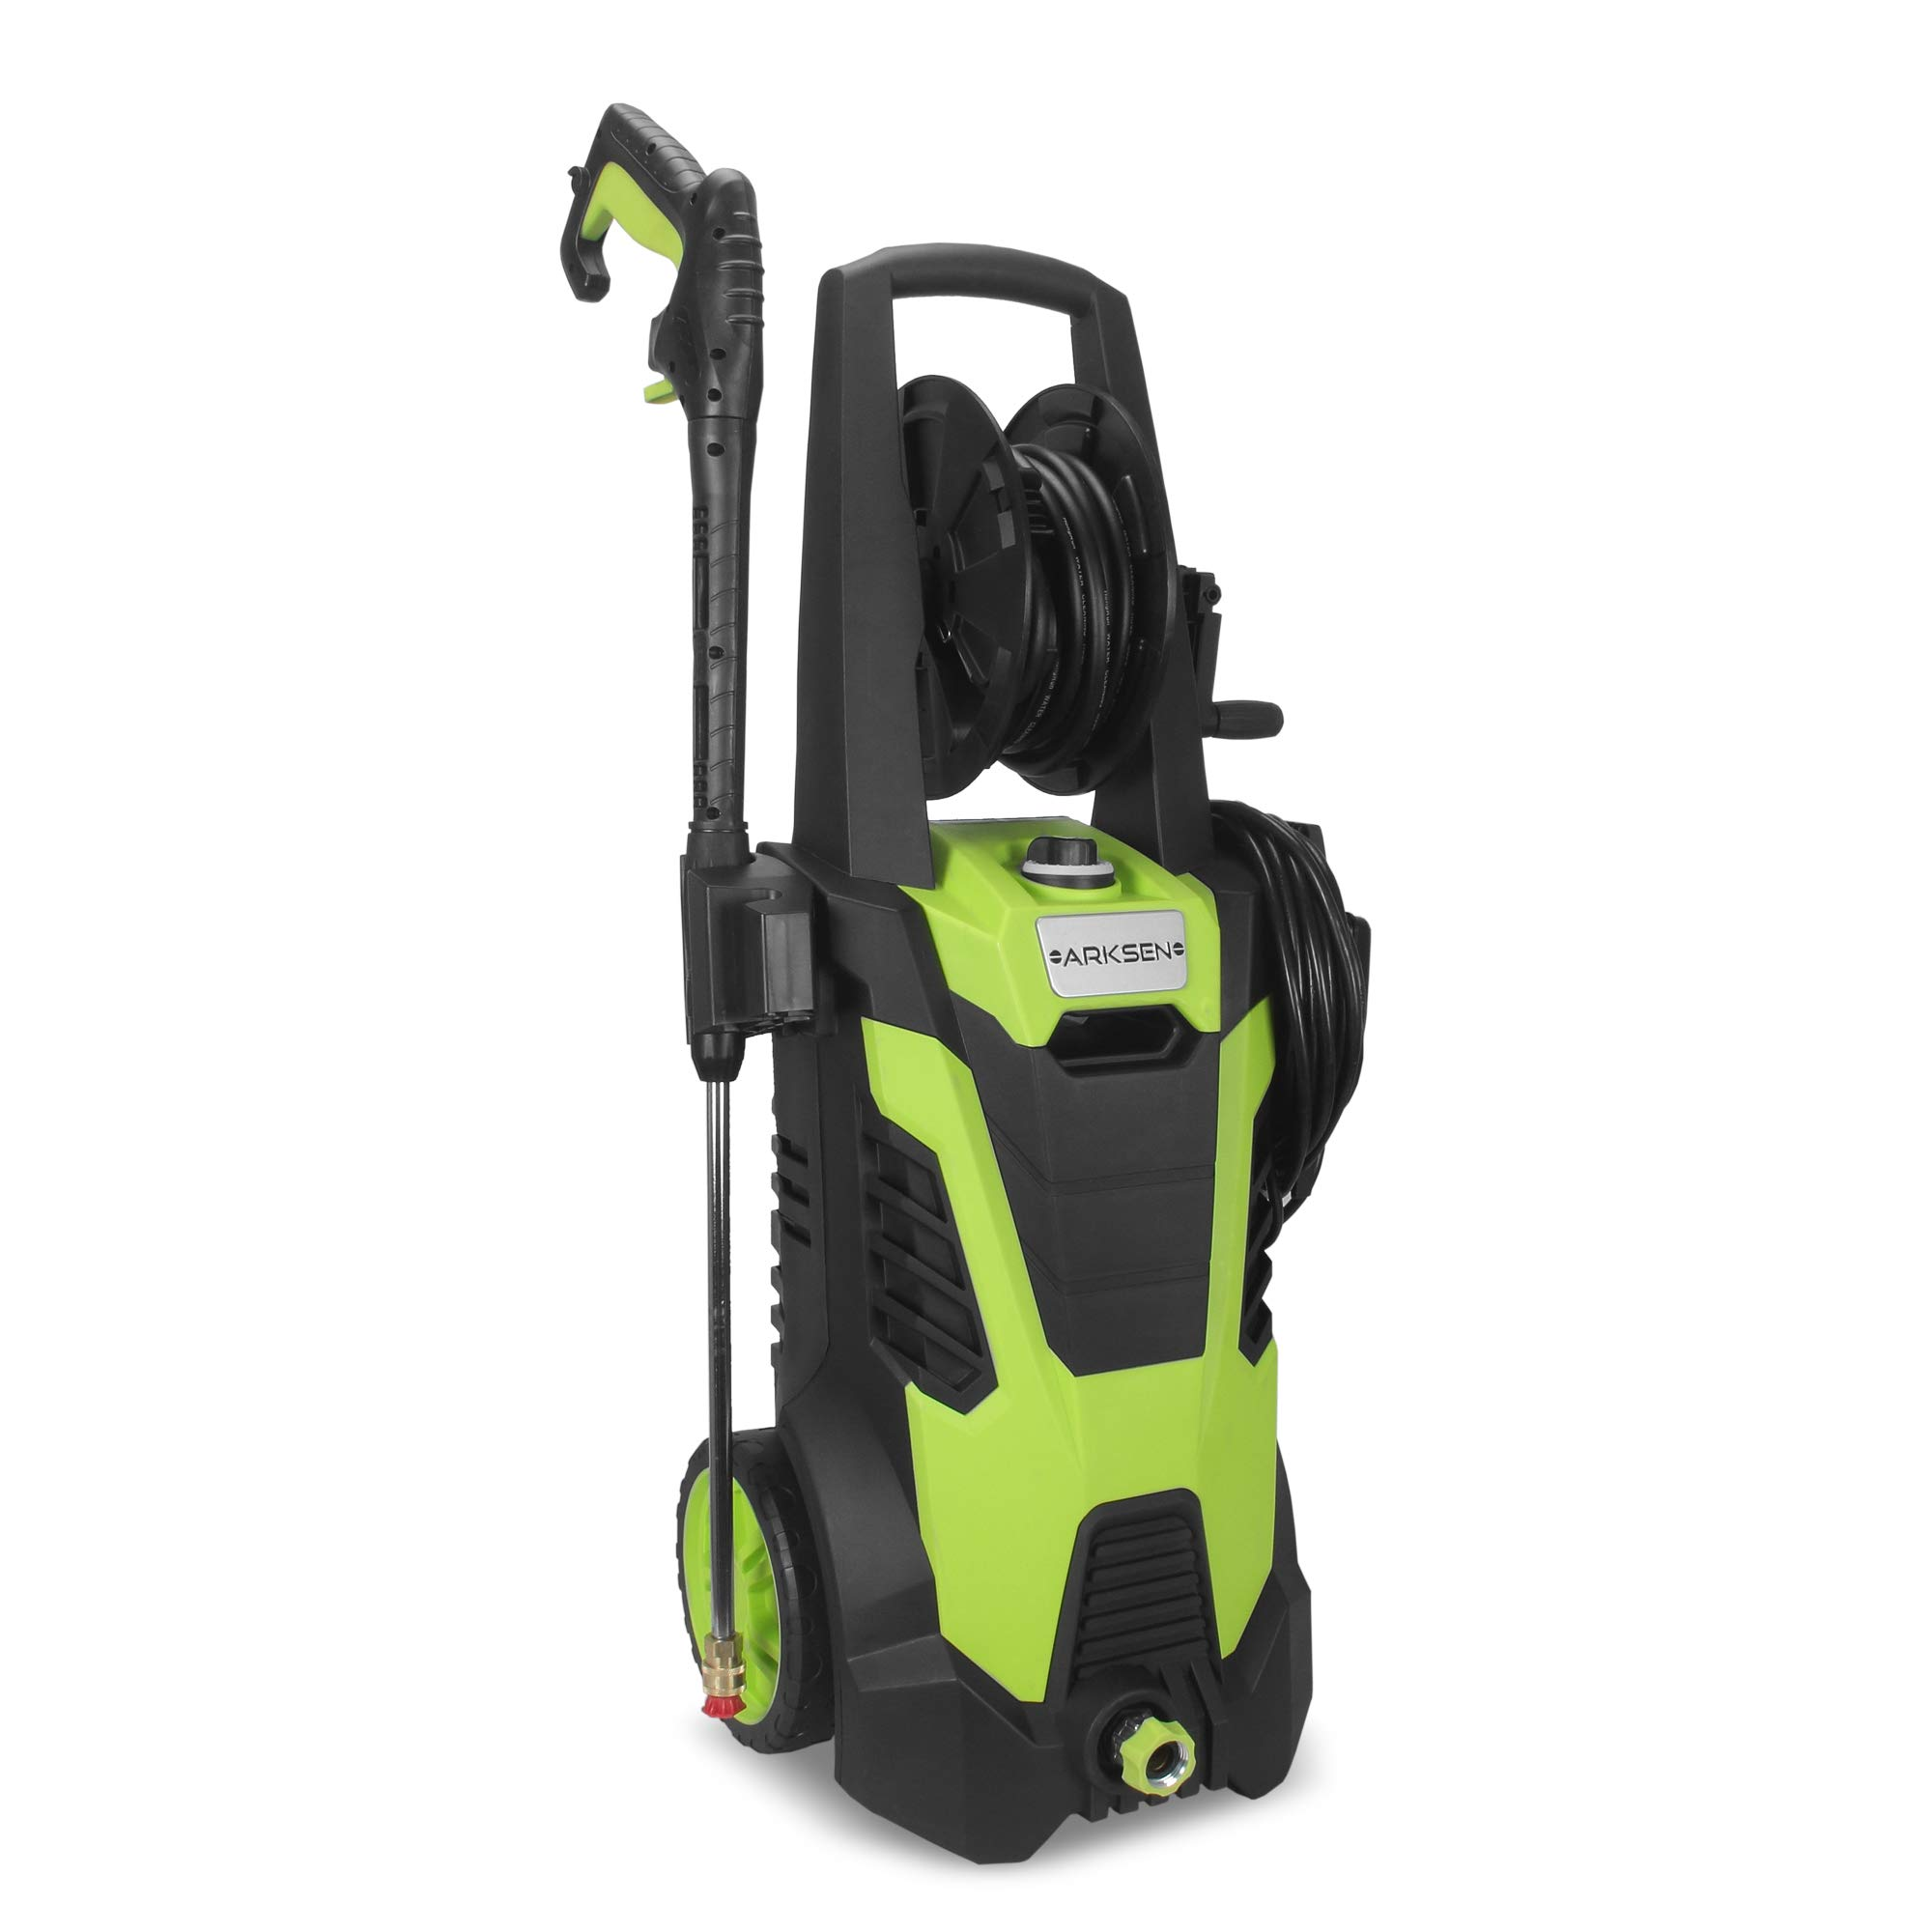 Arksen 3000 PSI 1.7 GPM 14.5 AMP Electric Pressure Washer with (5) Nozzle Adapter with Hose Reel, Green